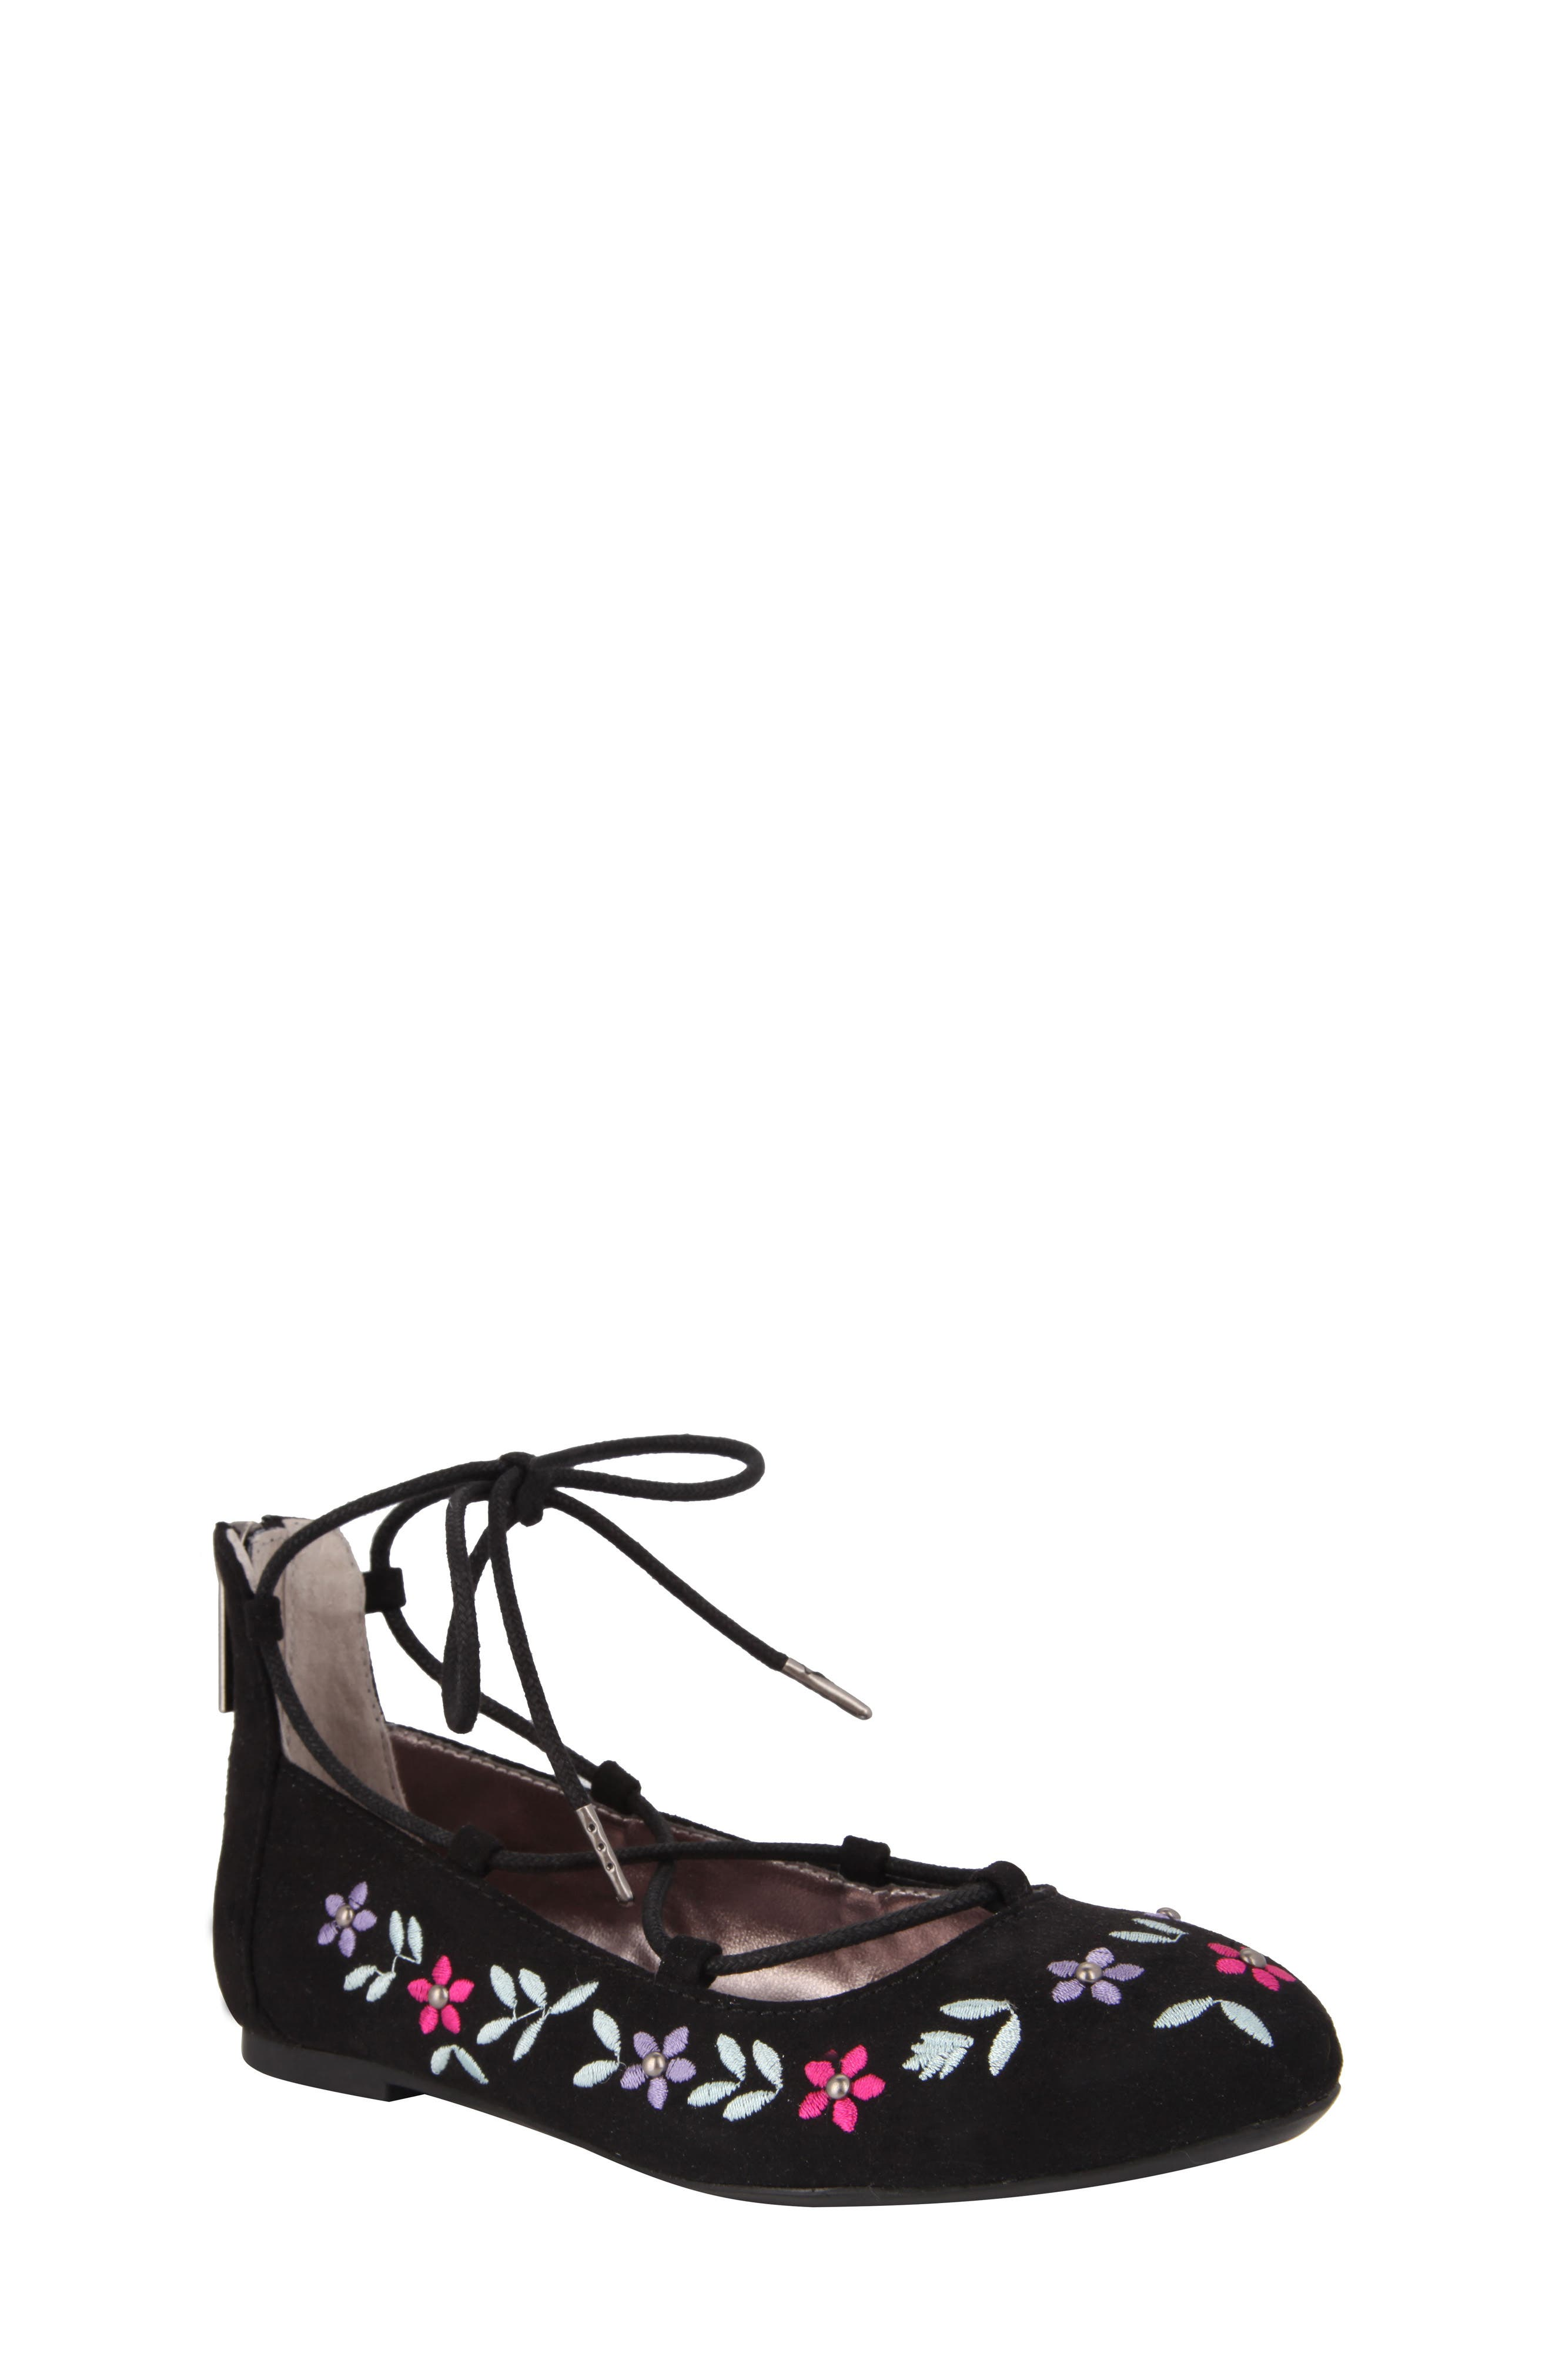 Nelly Embroidered Ghillie Flat,                             Main thumbnail 1, color,                             003